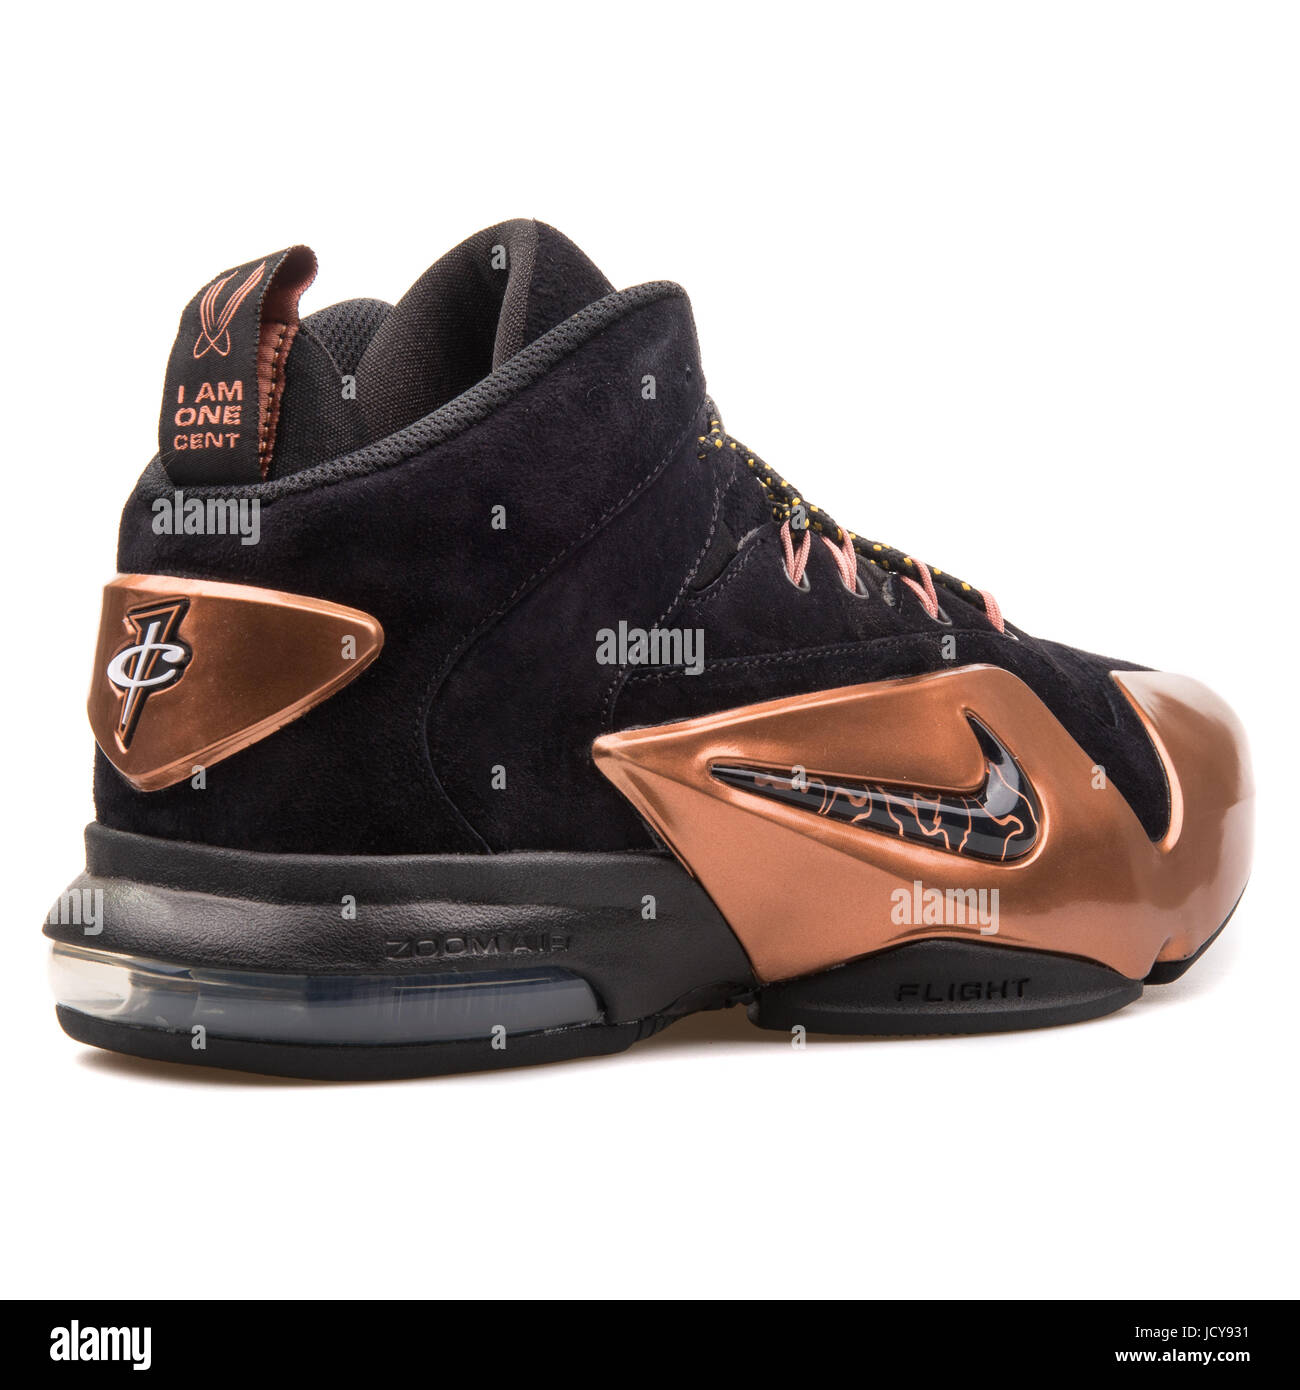 new styles d19f6 55f72 Nike Zoom Penny VI Black and Metallic Copper Men s Basketball Shoes - 749629 -001